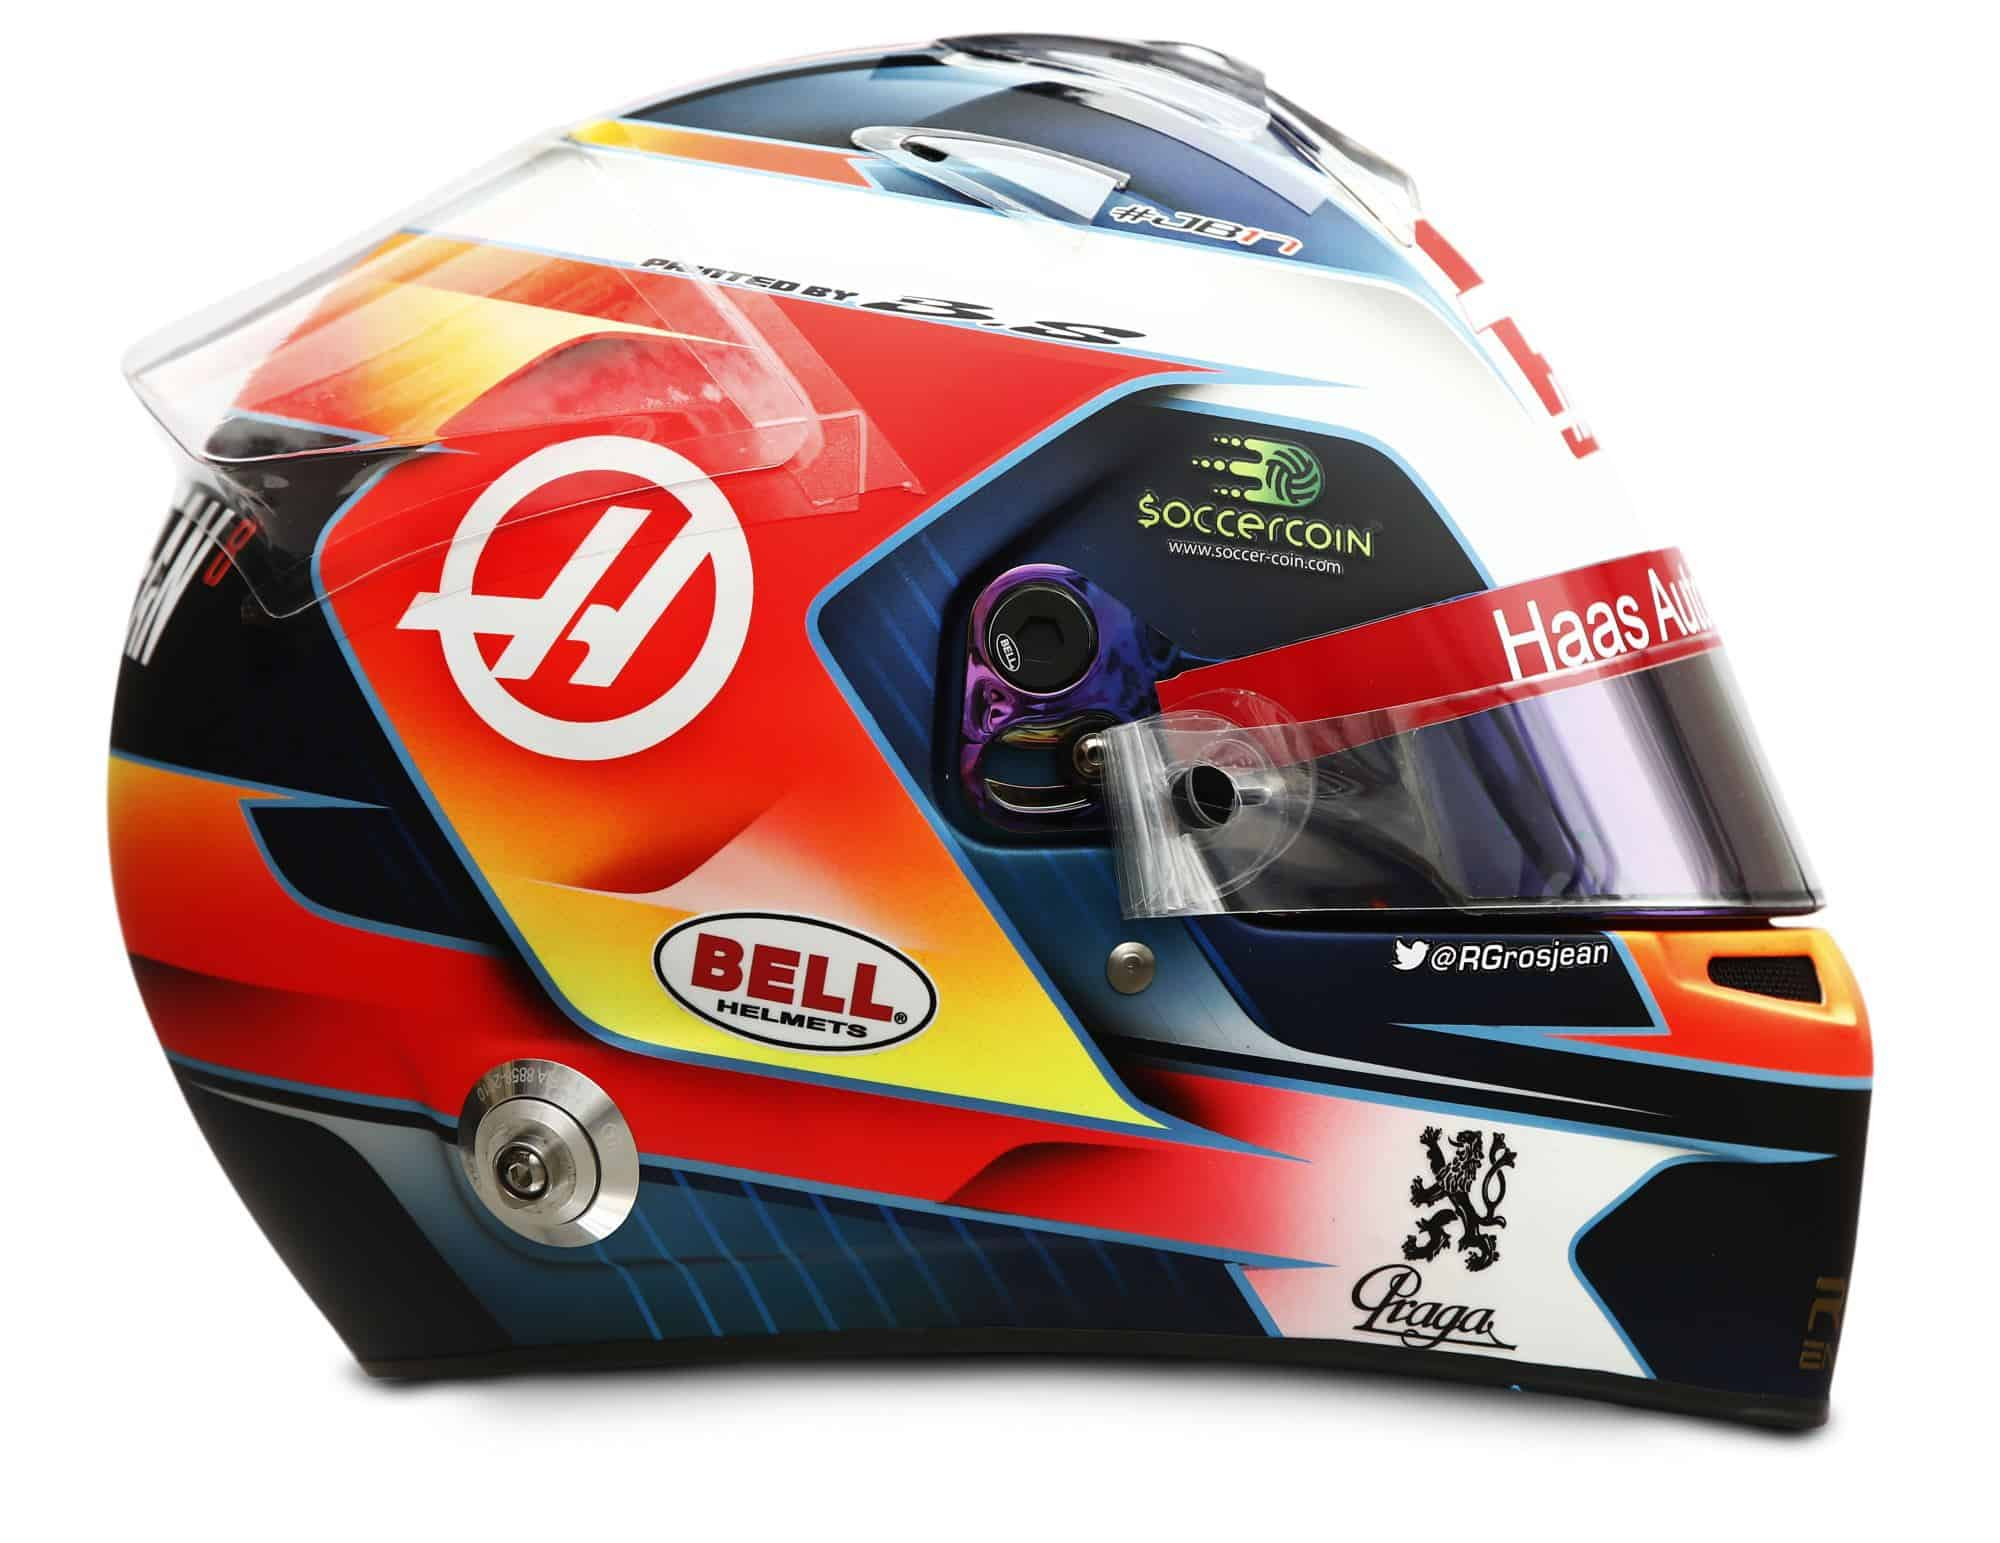 2019 Rich Energy Haas F1 Team Romain Grosjean helmet right side Photo Haas Edited by MAXF1net